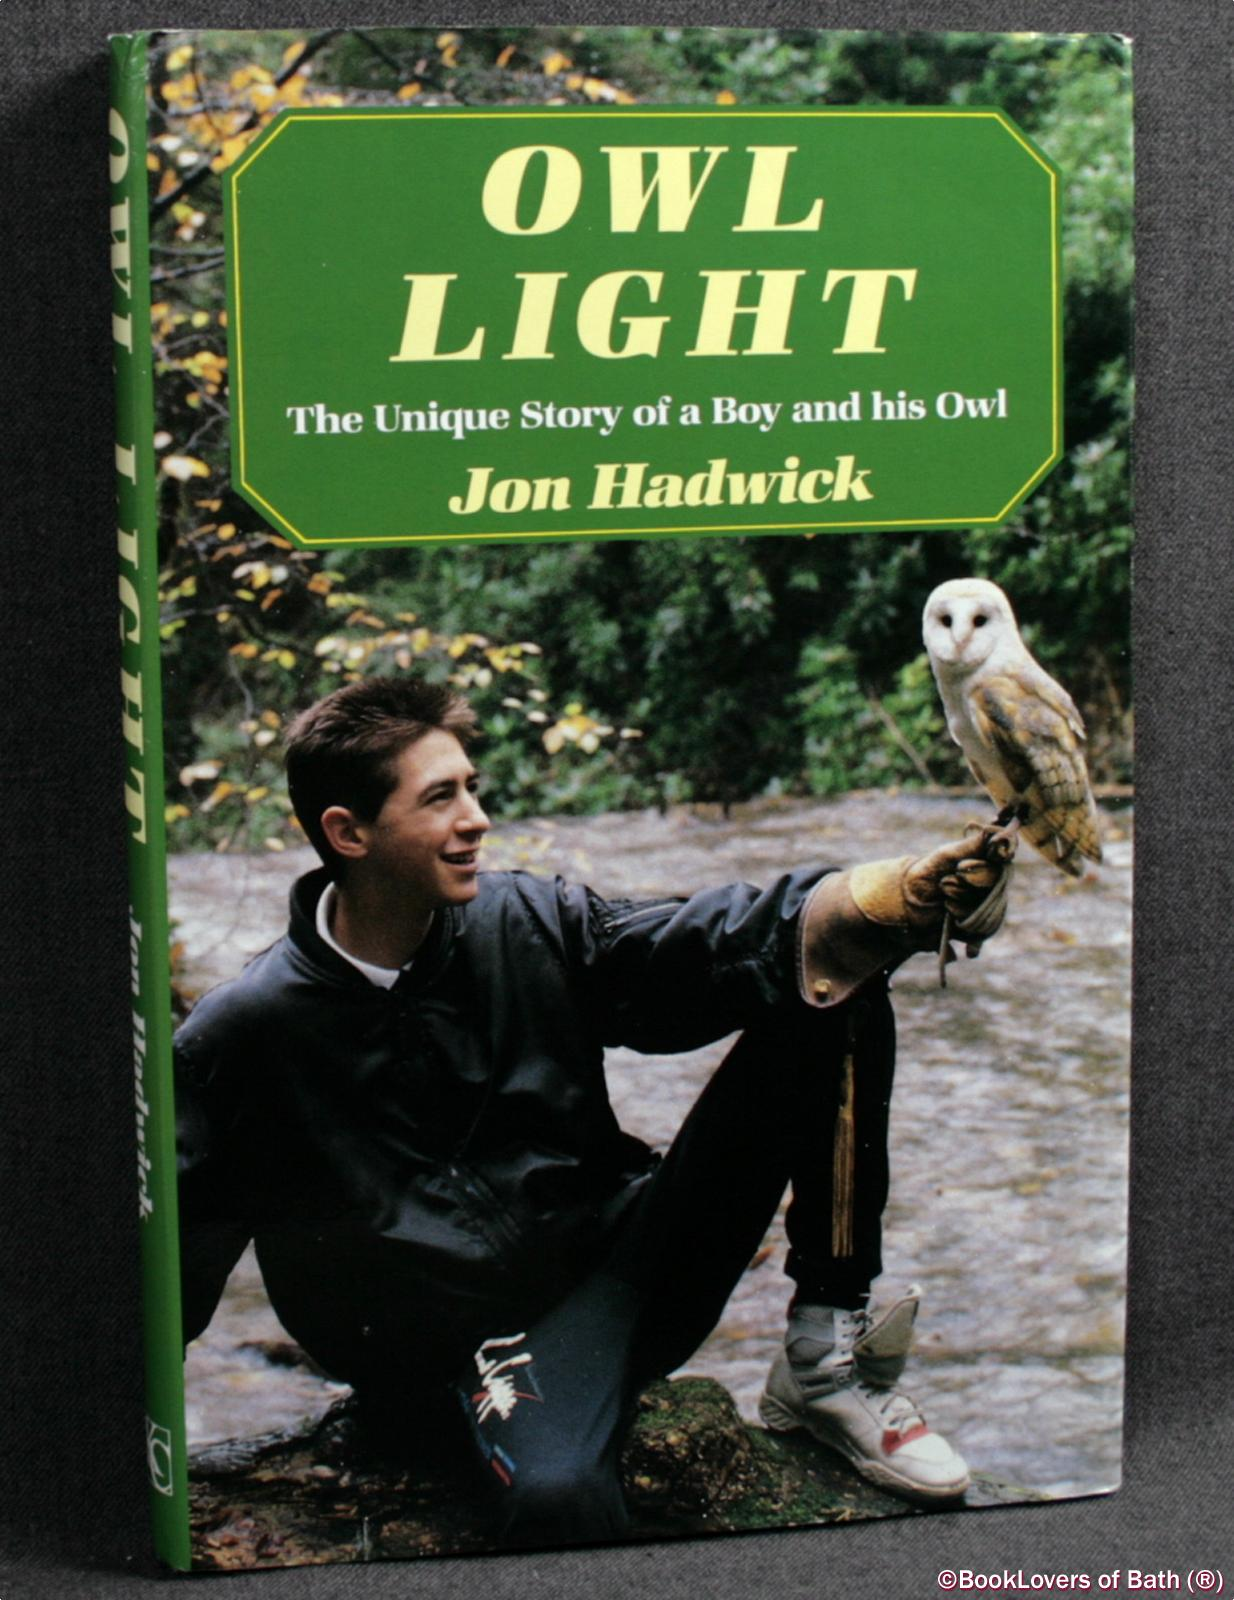 Owl Light: The Unique Story of a Boy and His Owl - Jon Hadwick